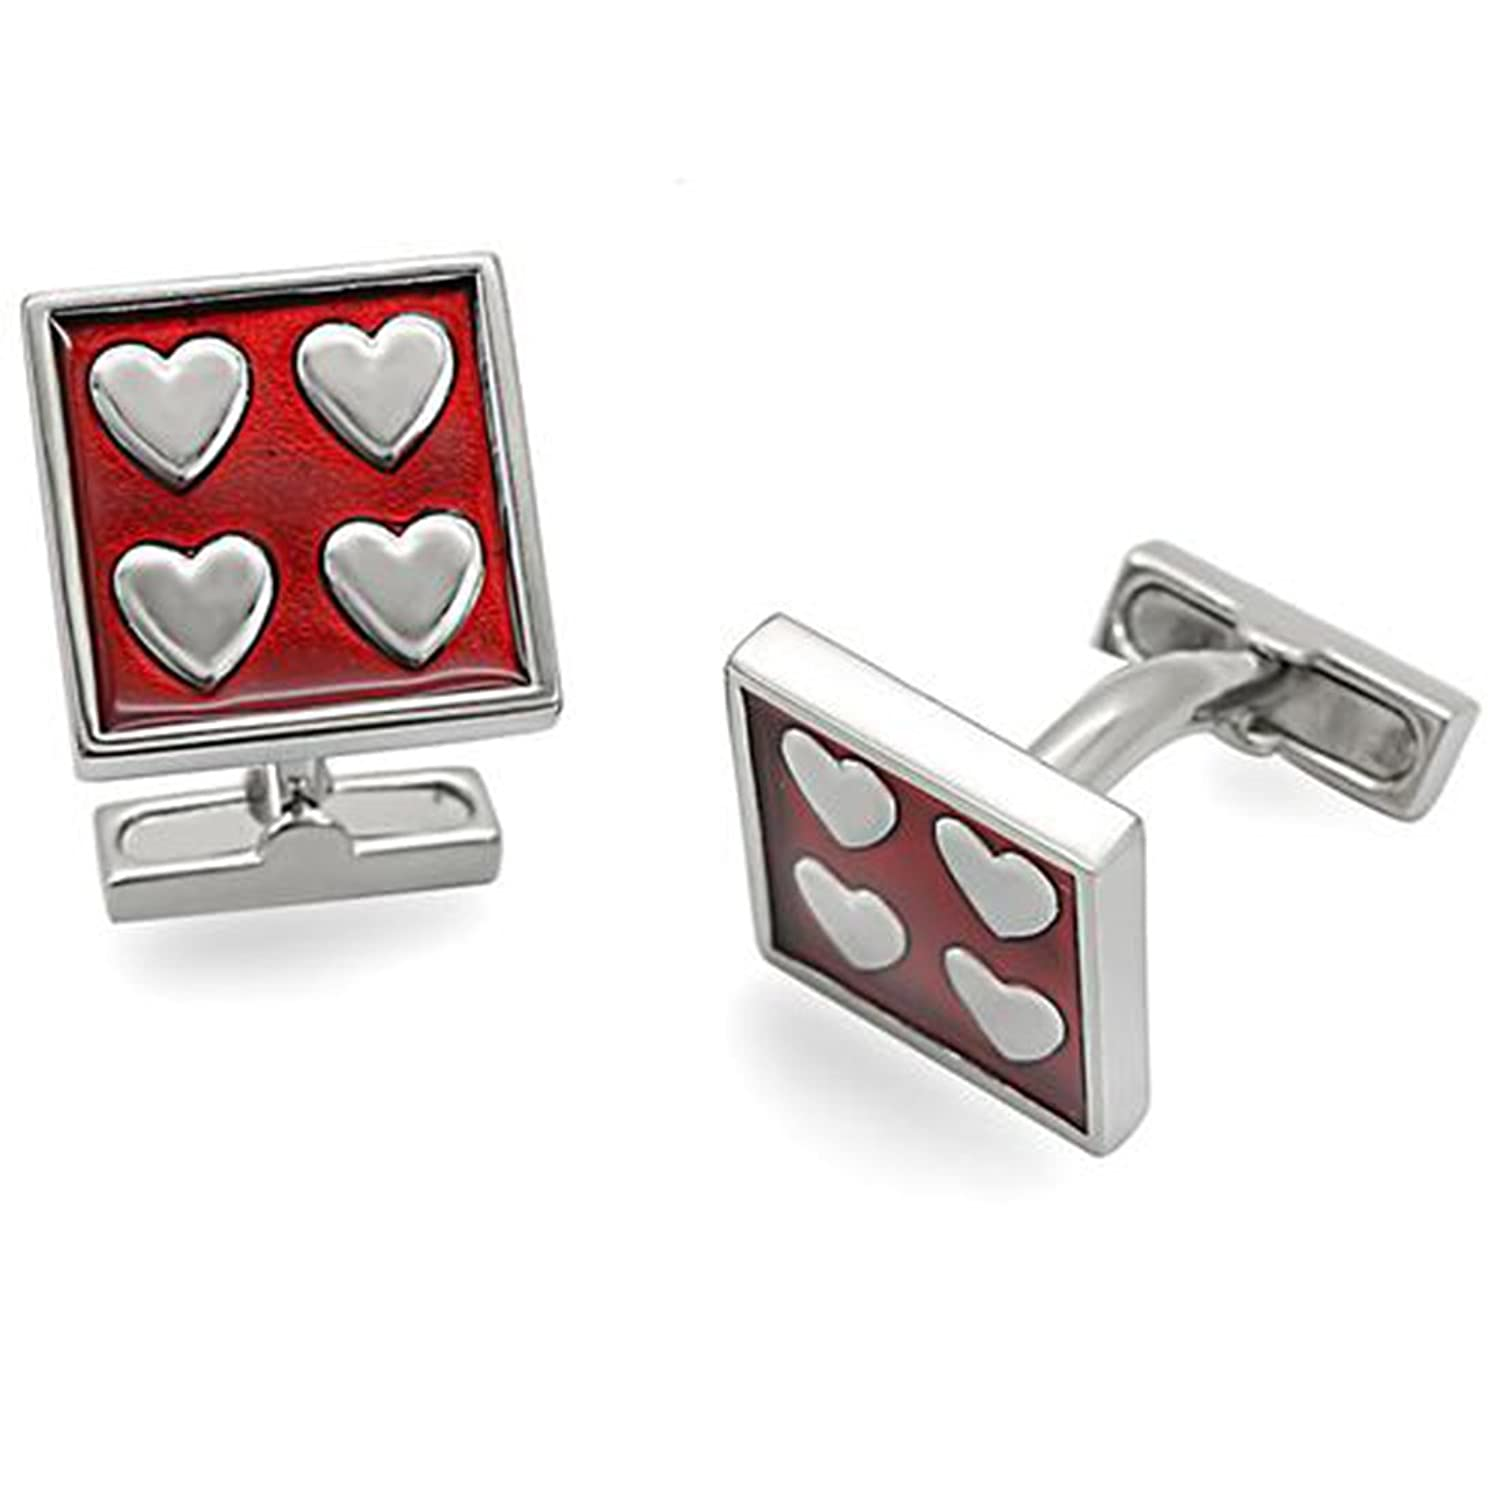 Red Enamel (Epoxy) Rhodium Plated Square Cufflinks with Heart Pattern